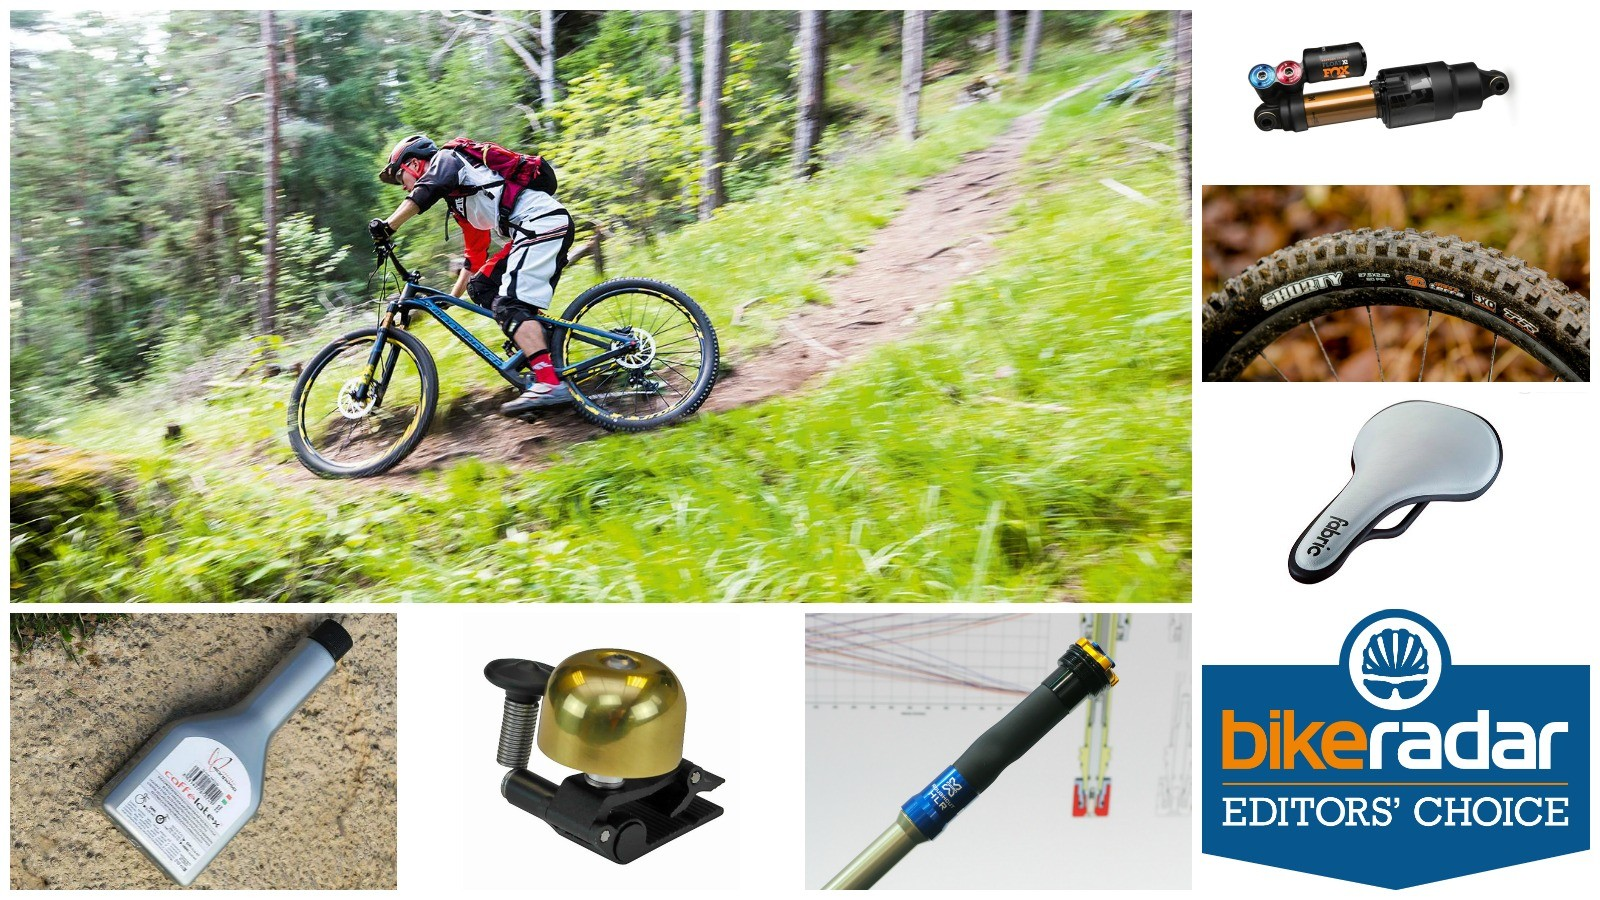 Jon Woodhouse's pick of the gear he put through its paces in 2015